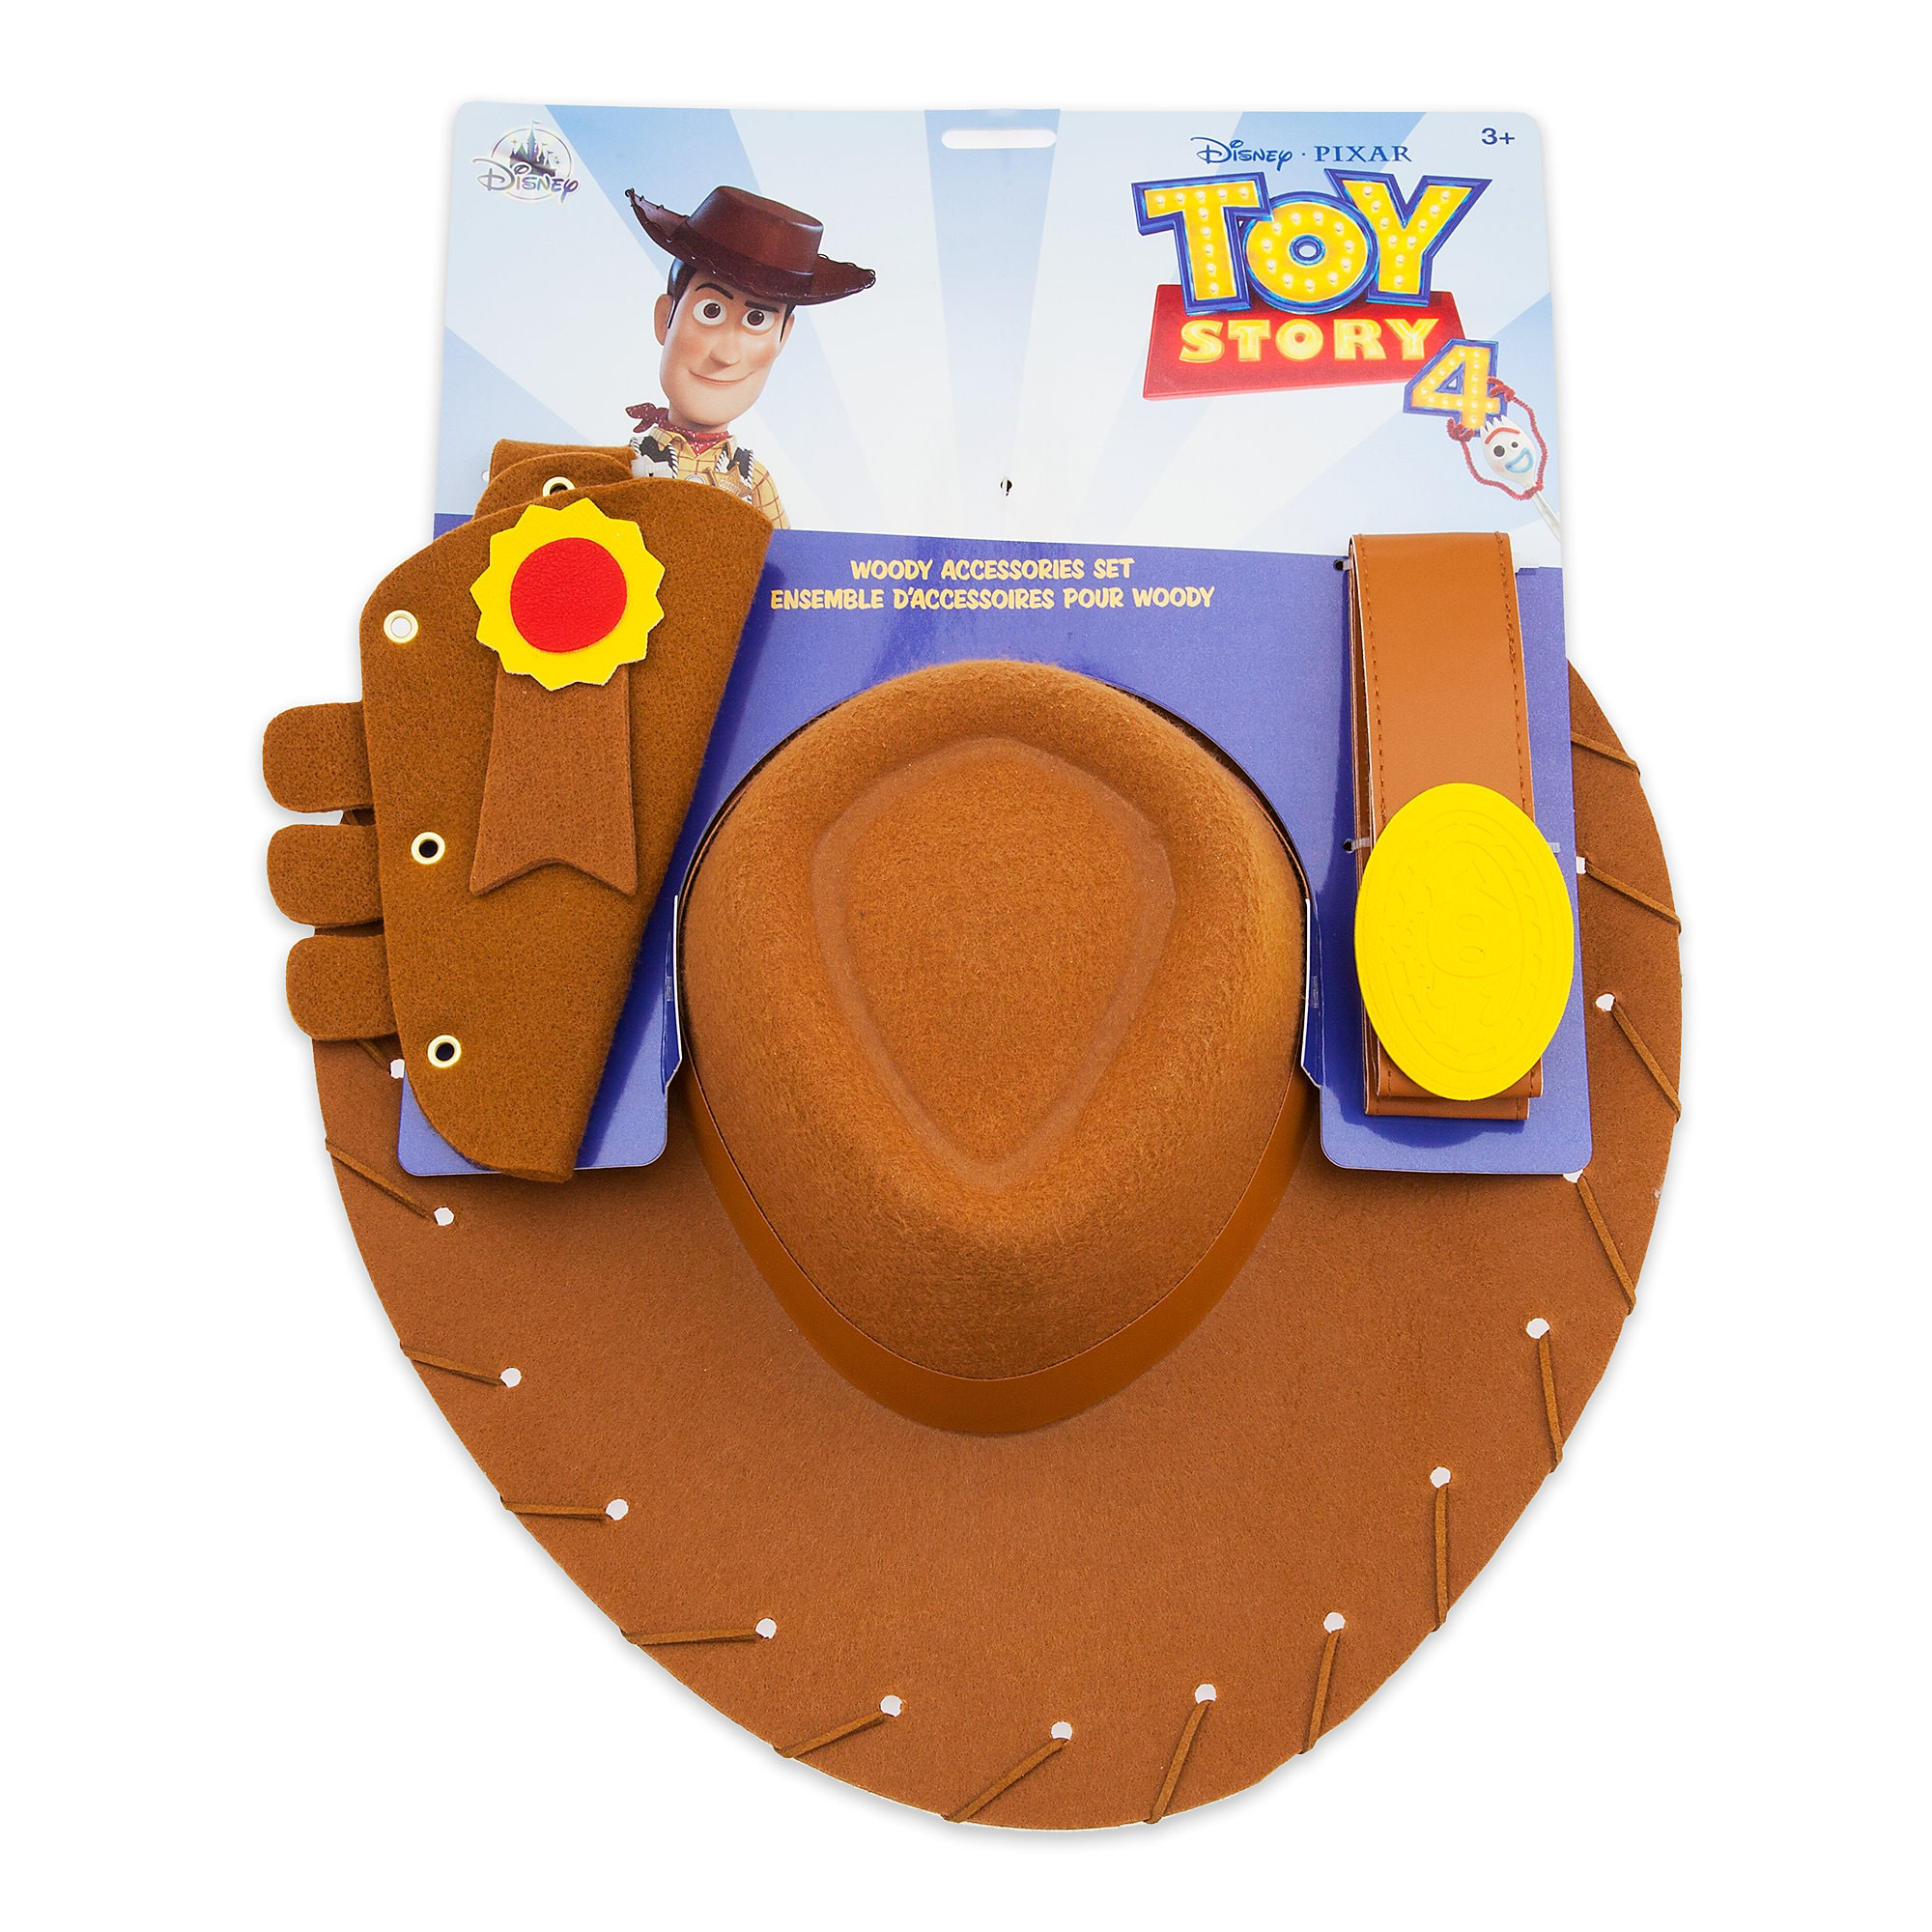 Woody Costume Accessory Set for Kids